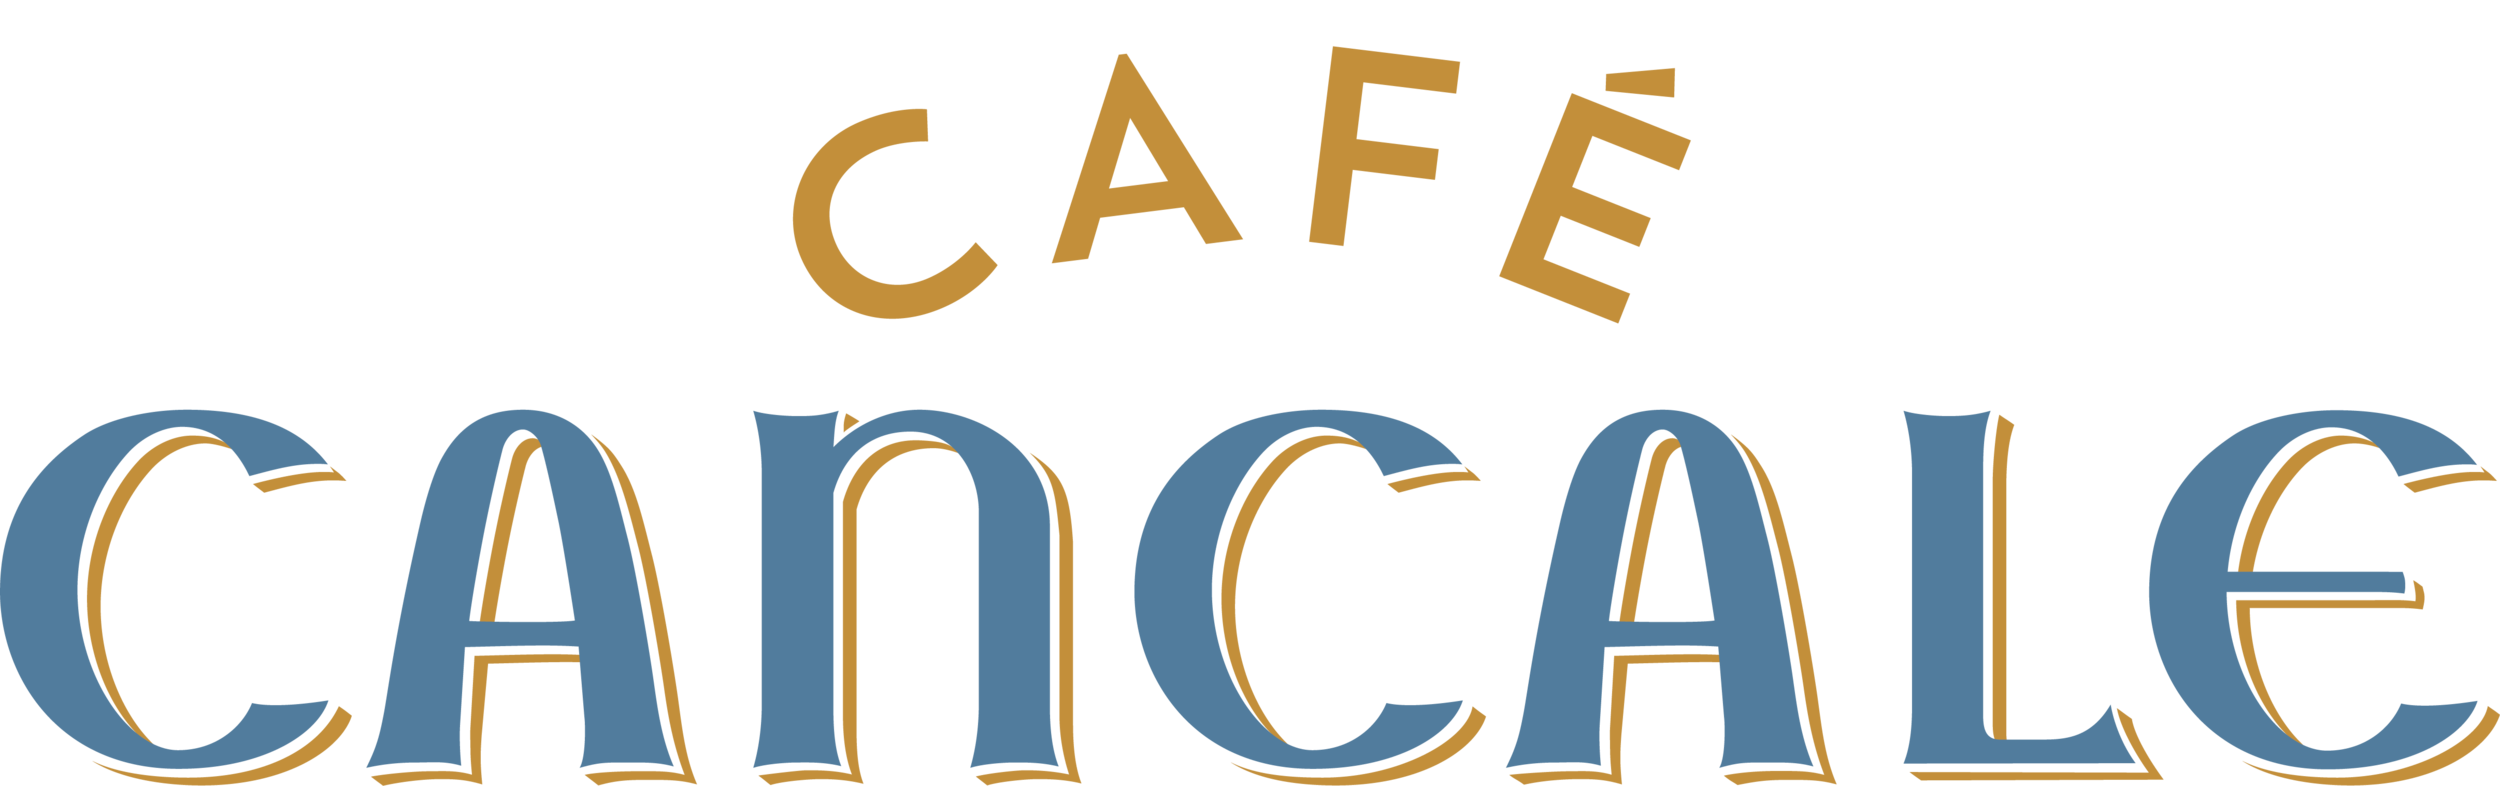 CANCALE_LOGO_BLUE_AND_GOLD.png